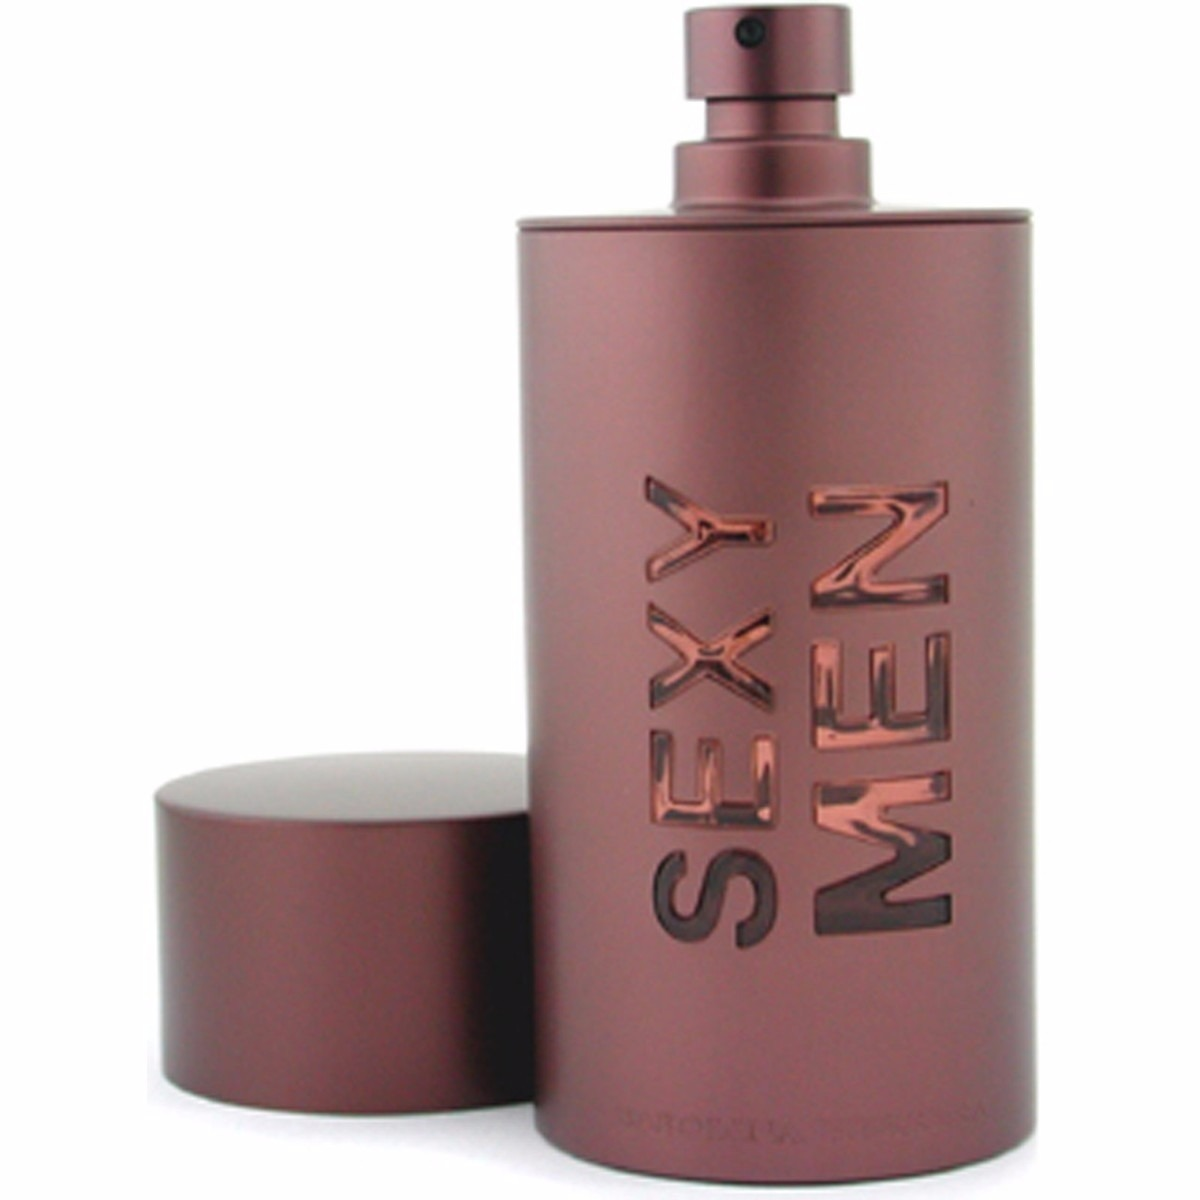 Perfume 212 Sexy Men 100Ml Carolina Herrera 100 Original -6881